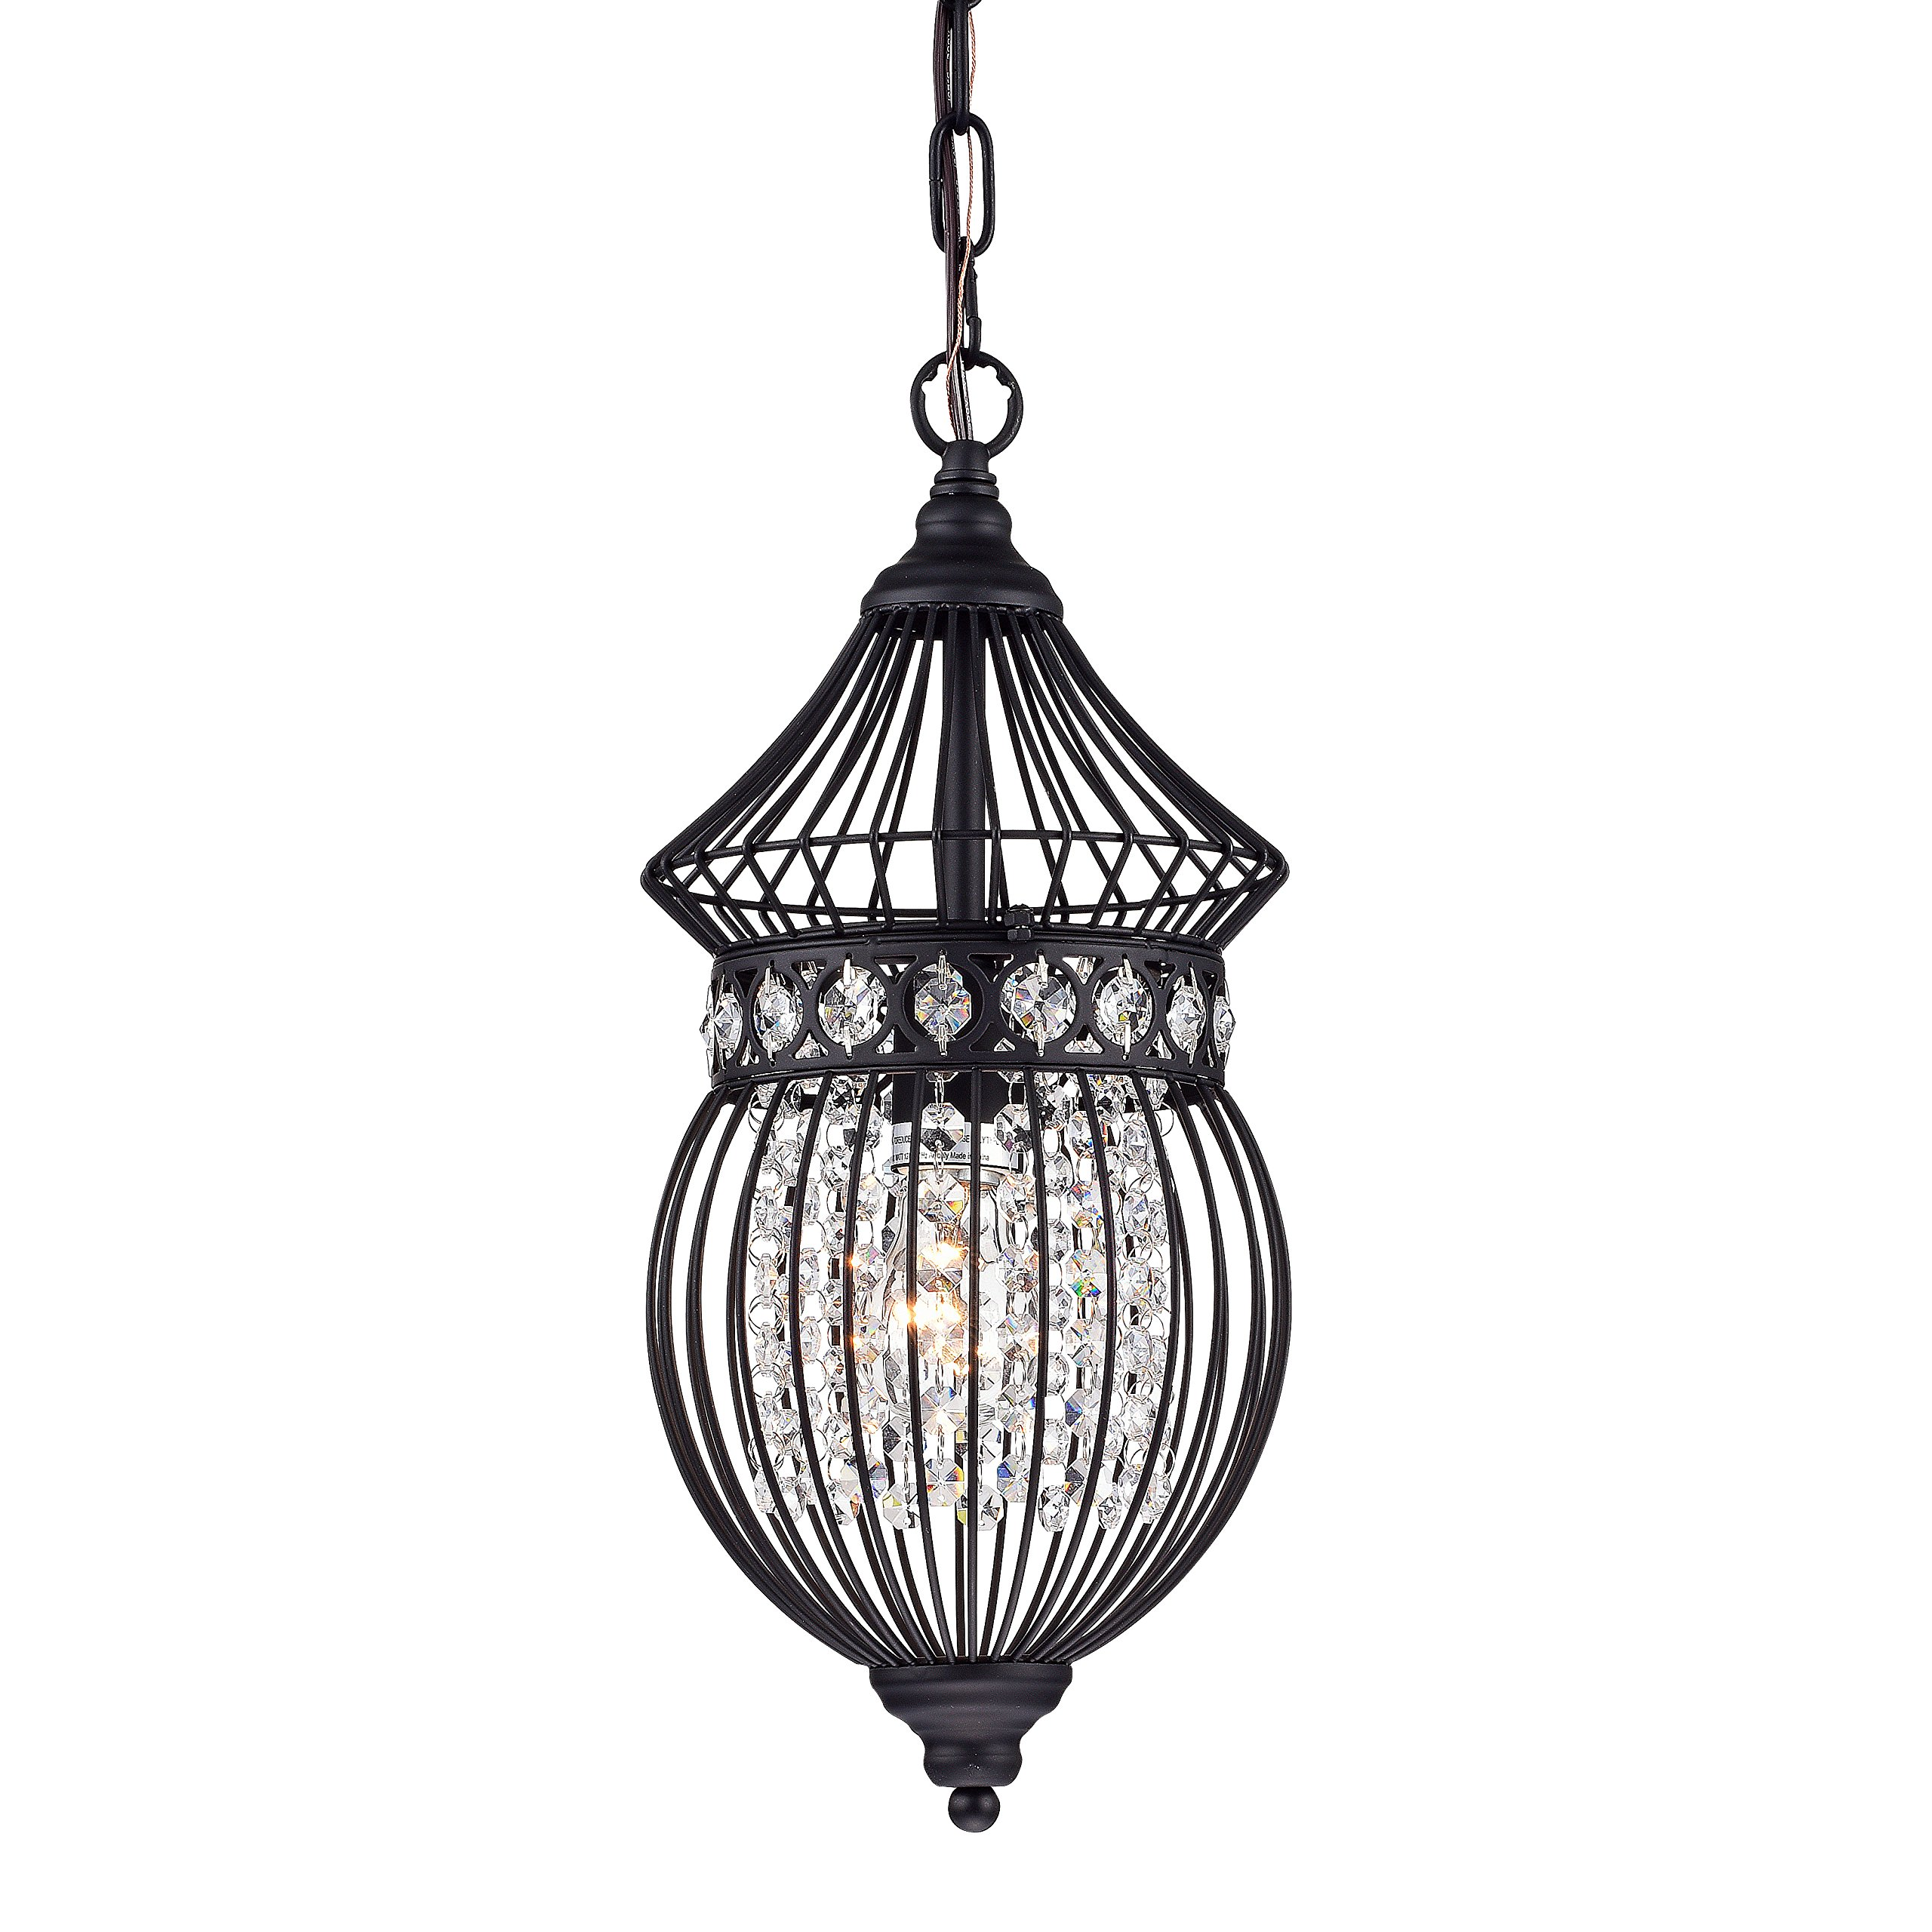 Black Chandeliers Crystal Chandelier Lighting Farmhouse Lighting Fixtures 1 Light 17045 by LaLuLa (Image #1)